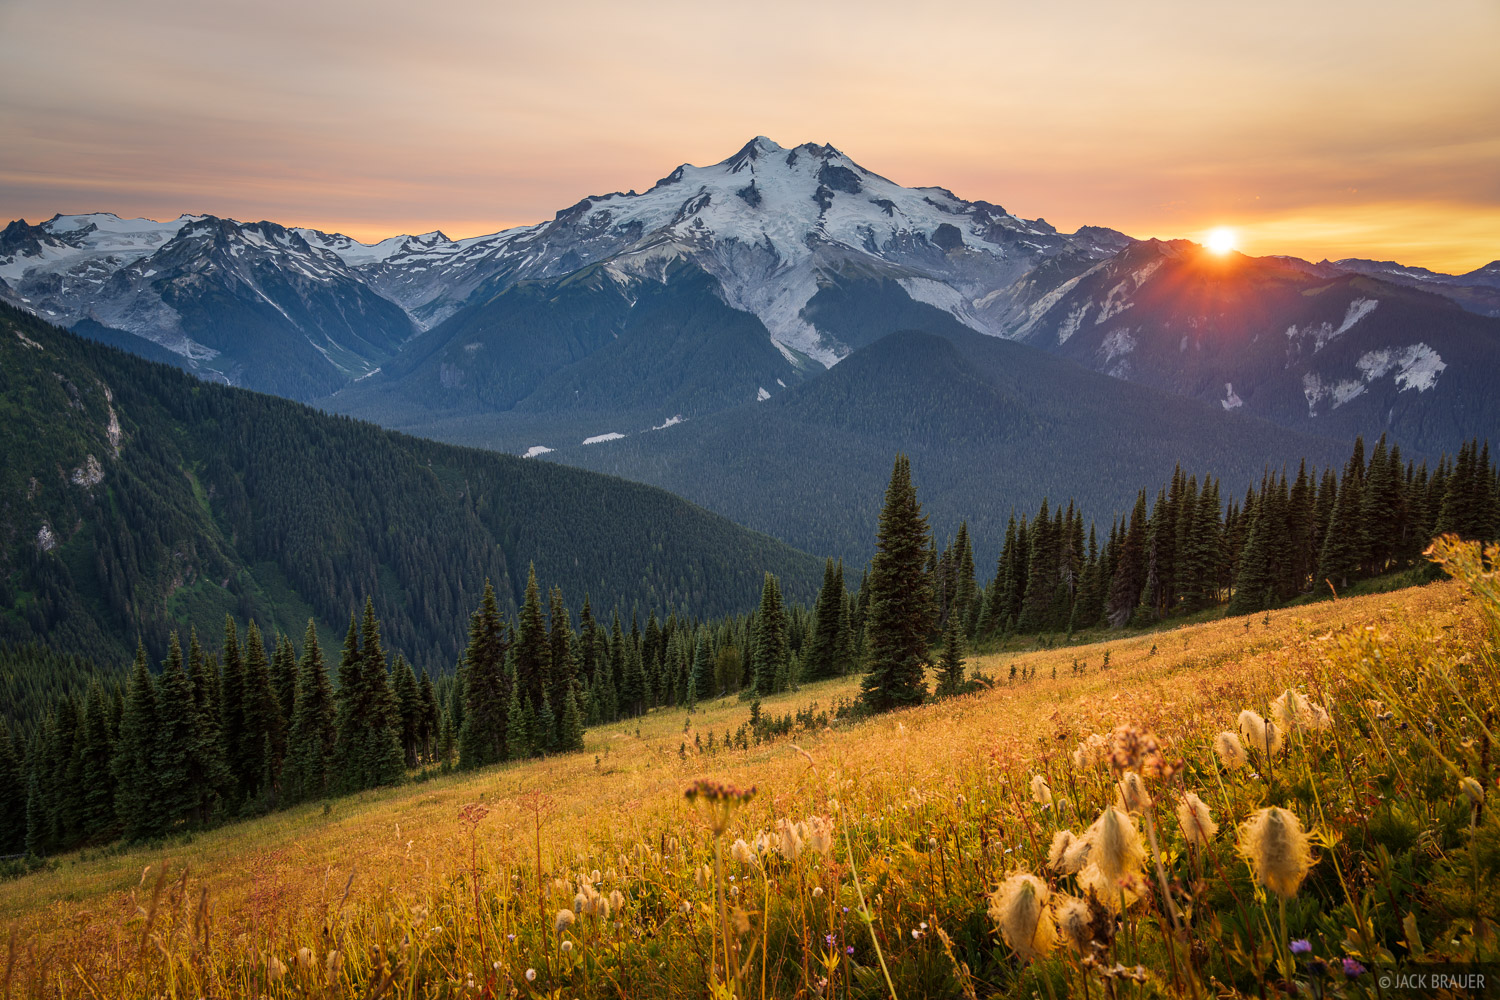 Glacier Peak, Glacier Peak Wilderness, Washington, Cascades, photo